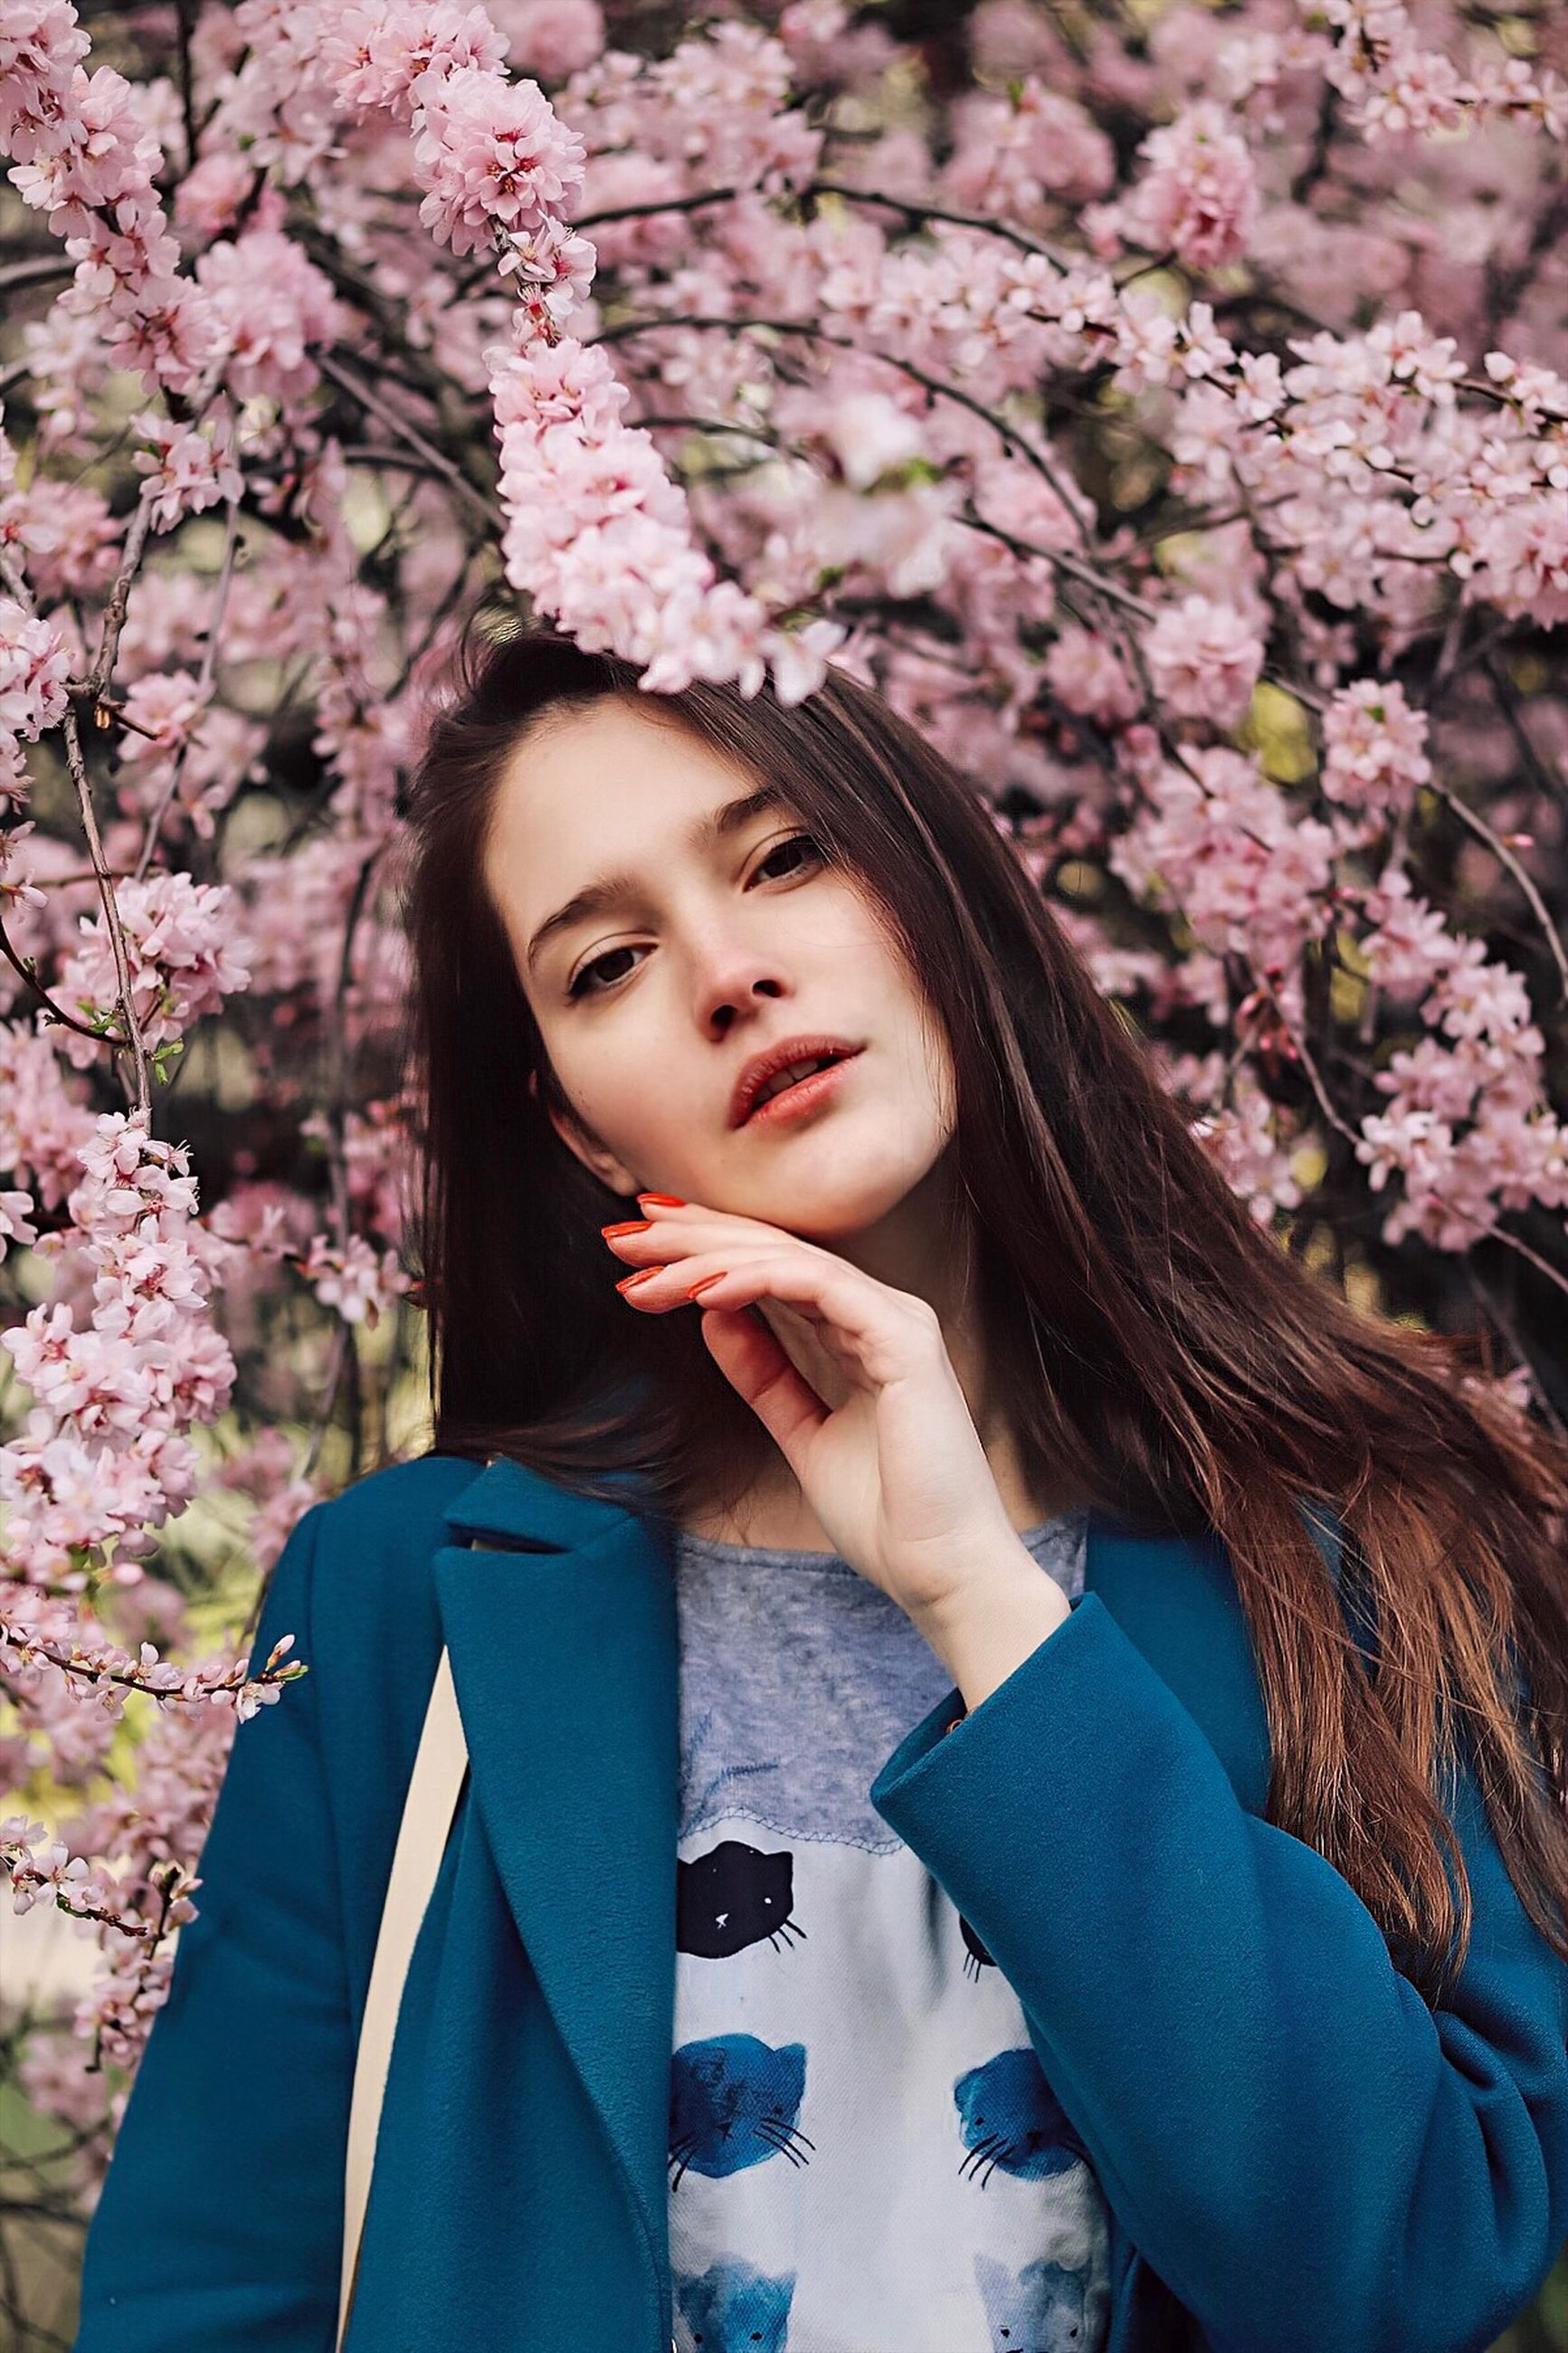 one person, flower, young adult, flowering plant, real people, portrait, plant, lifestyles, front view, young women, long hair, beauty, hairstyle, leisure activity, women, hair, nature, fragility, beautiful woman, beauty in nature, pink color, outdoors, springtime, cherry blossom